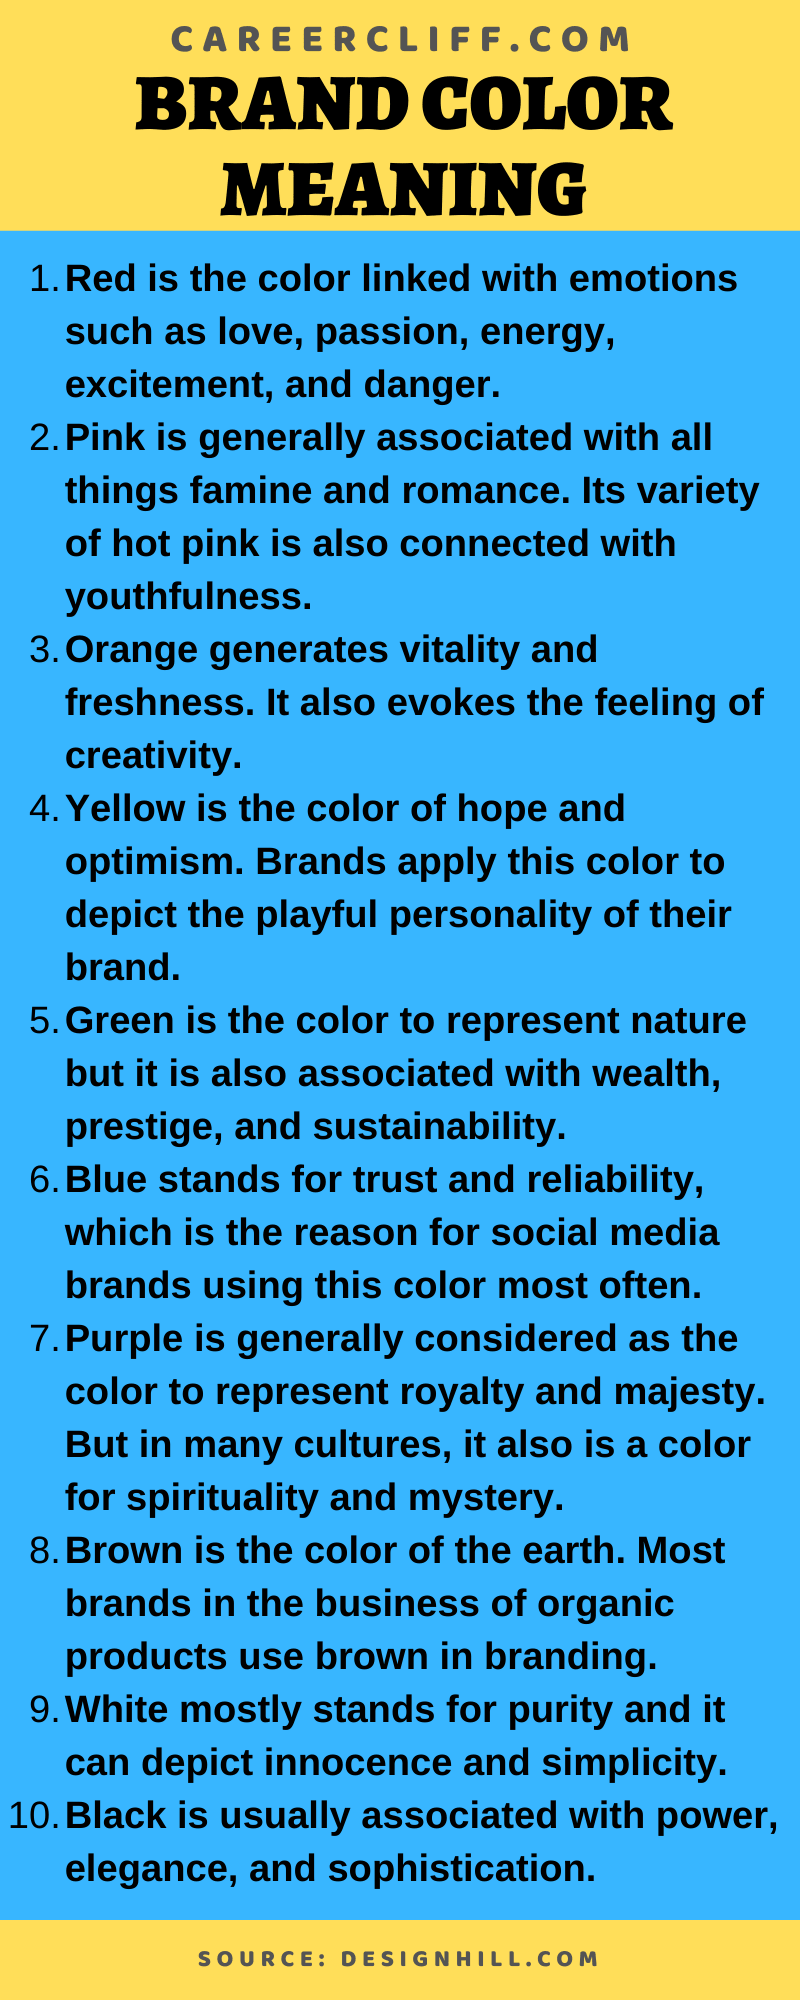 brand color meaning logo colors meaning color branding meaning meaning of colors in business logos red logo meaning brand colors and meaning brand colour meanings 7 eleven logo colors meaning white brand meaning color meaning in branding color meaning branding corporate colours meaning united colors of benetton meaning colors meaning in logo design business logo color meanings united colors of benetton logo meaning meaning of colors in branding colors in logo meaning color meaning in business logo company logo color meaning green branding meaning color psychology business branding starbucks logo color meaning brand colour meaning color meaning for branding brand colours and their meanings amazon logo colors meaning logo colors and meanings color meanings for logos colors for branding meaning brand colors and their meaning colour branding meaning meaning of colors in logo design white branding definition red bull logo hidden meaning logo color and meaning colour meaning in branding meaning of colors in marketing and branding color meanings business